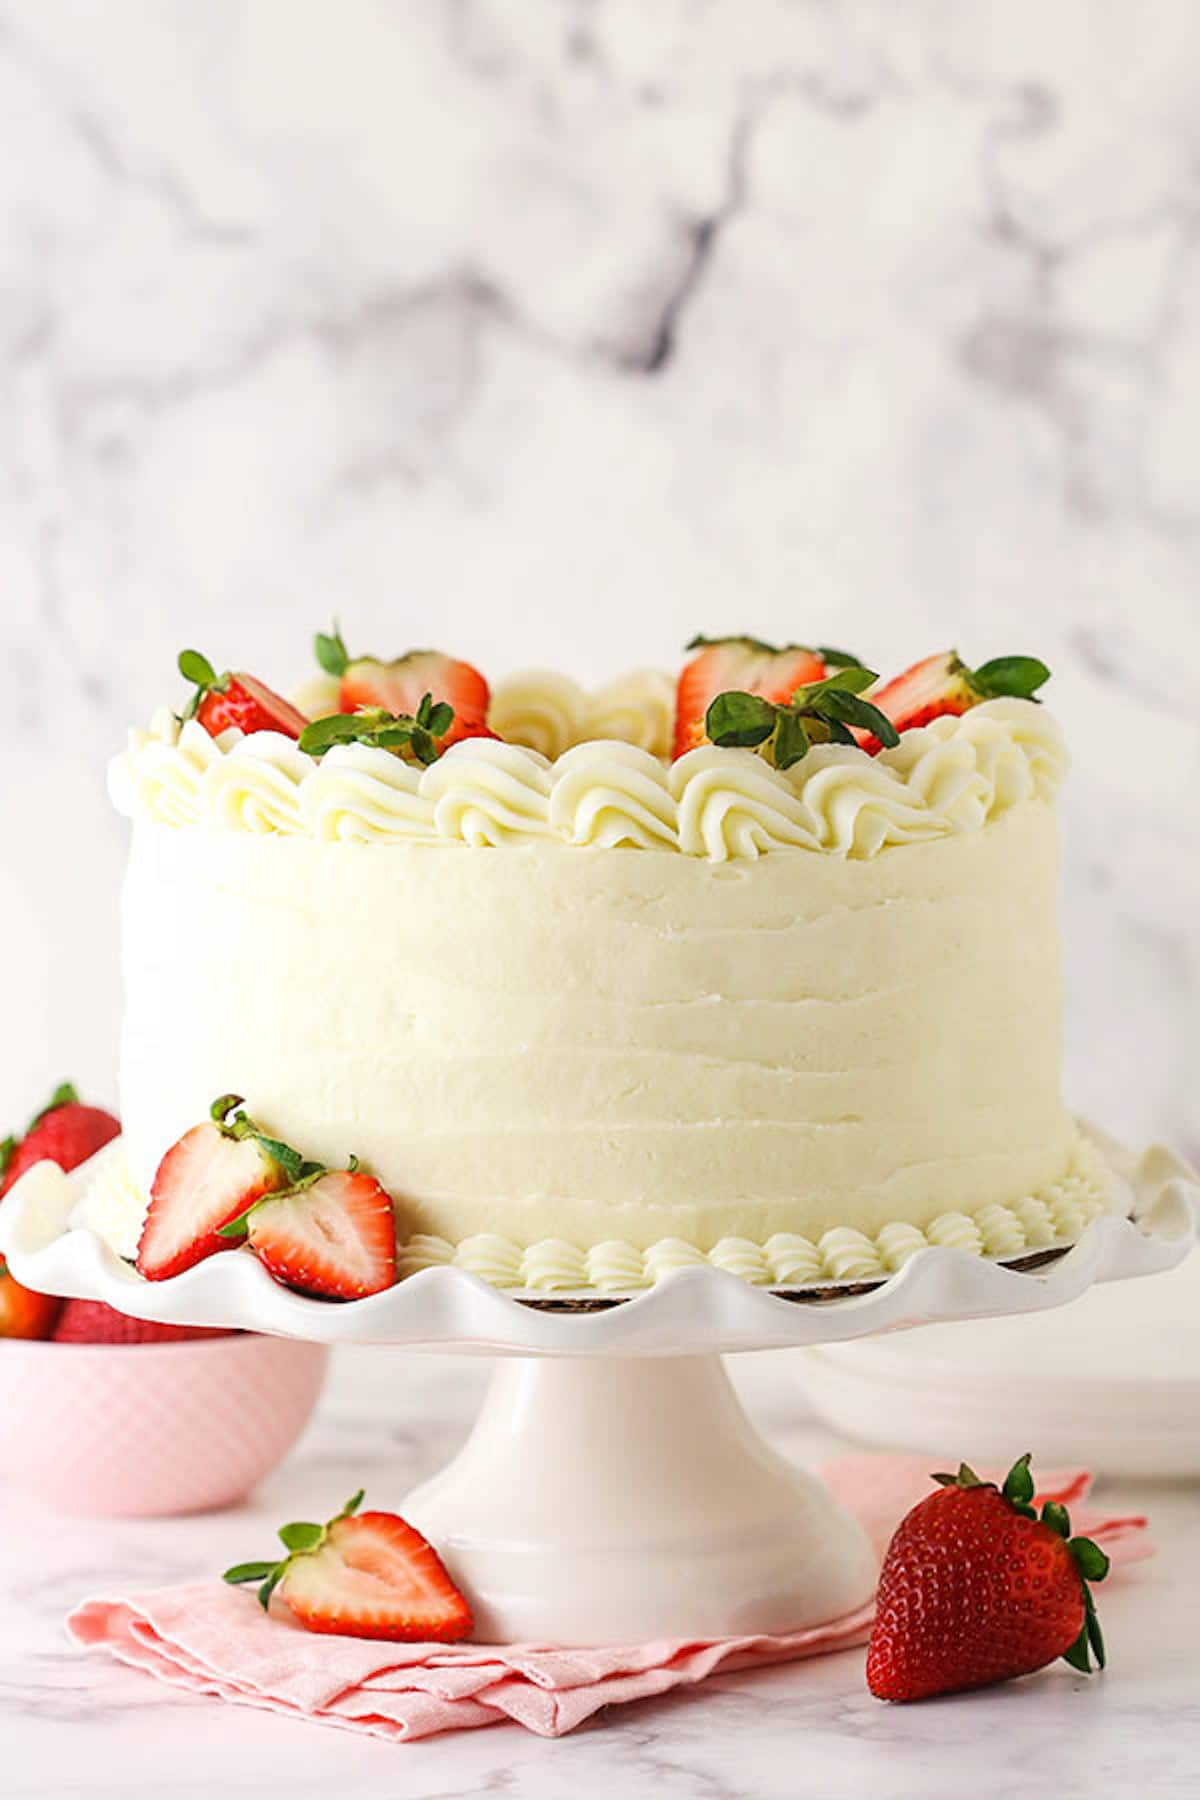 A Cake Stand Holding a Frosted Strawberry Layer Cake